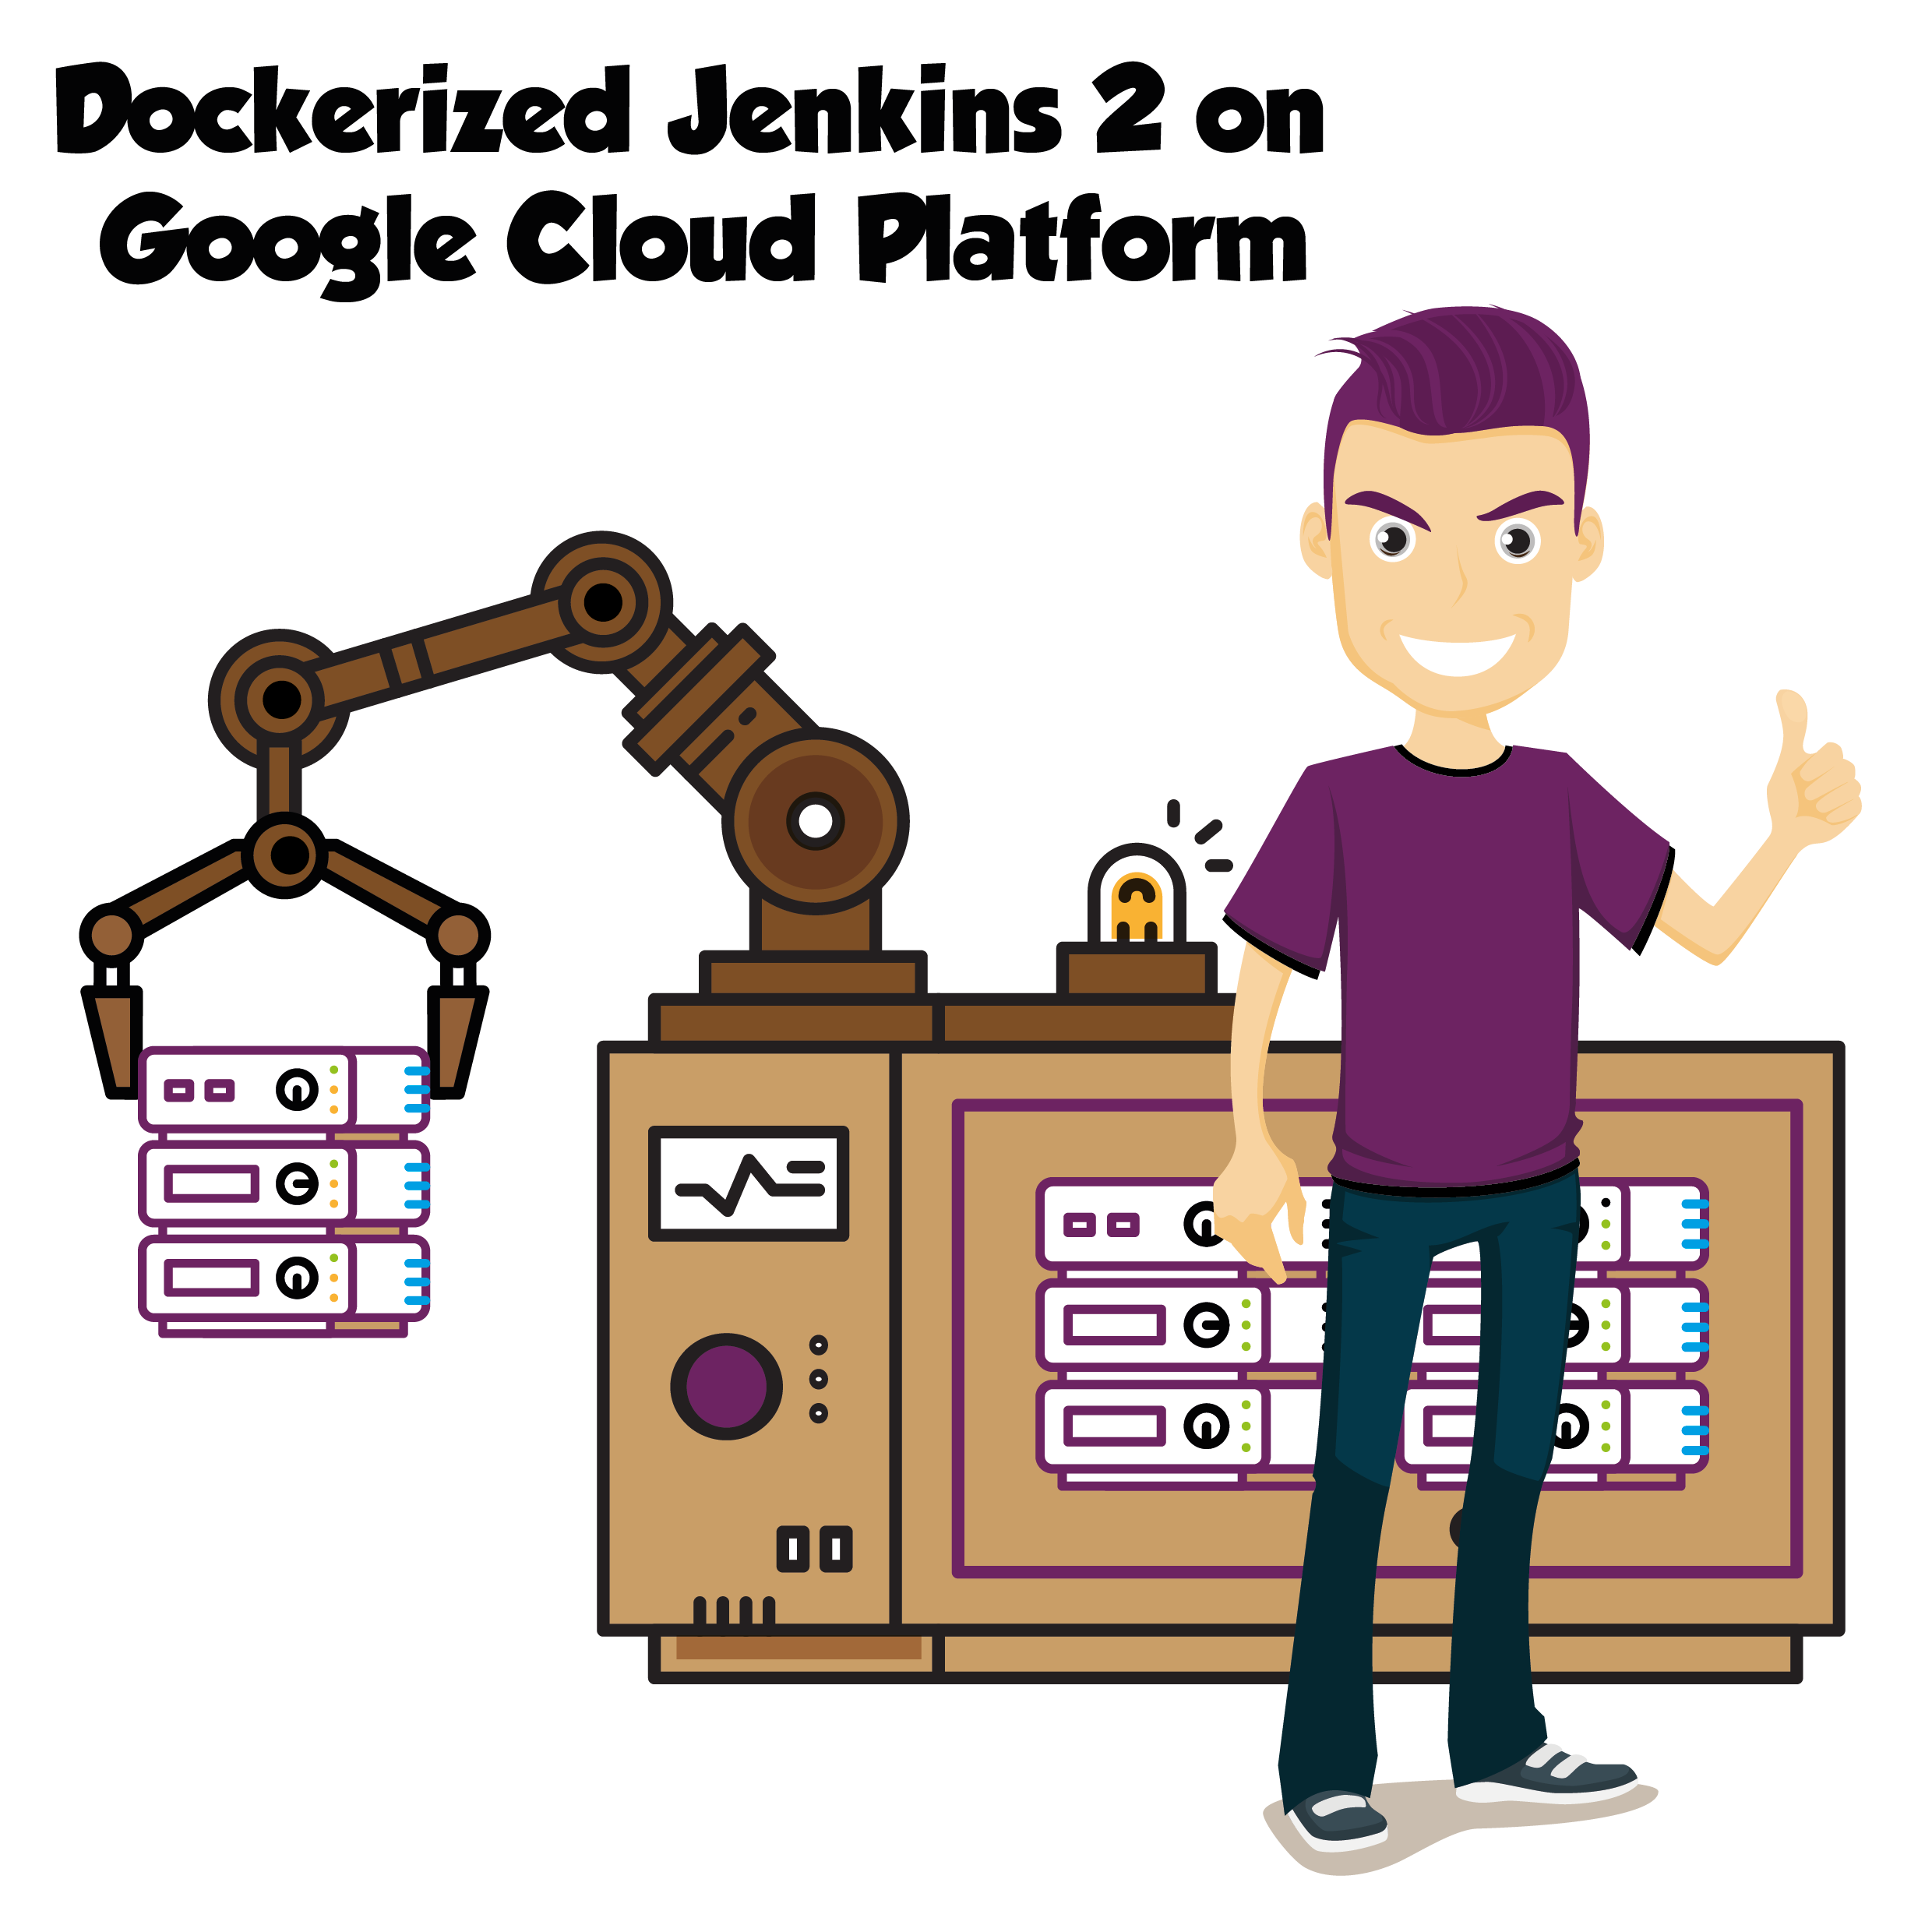 Dockerized Jenkins 2 on Google Cloud Platform - Ramblings of